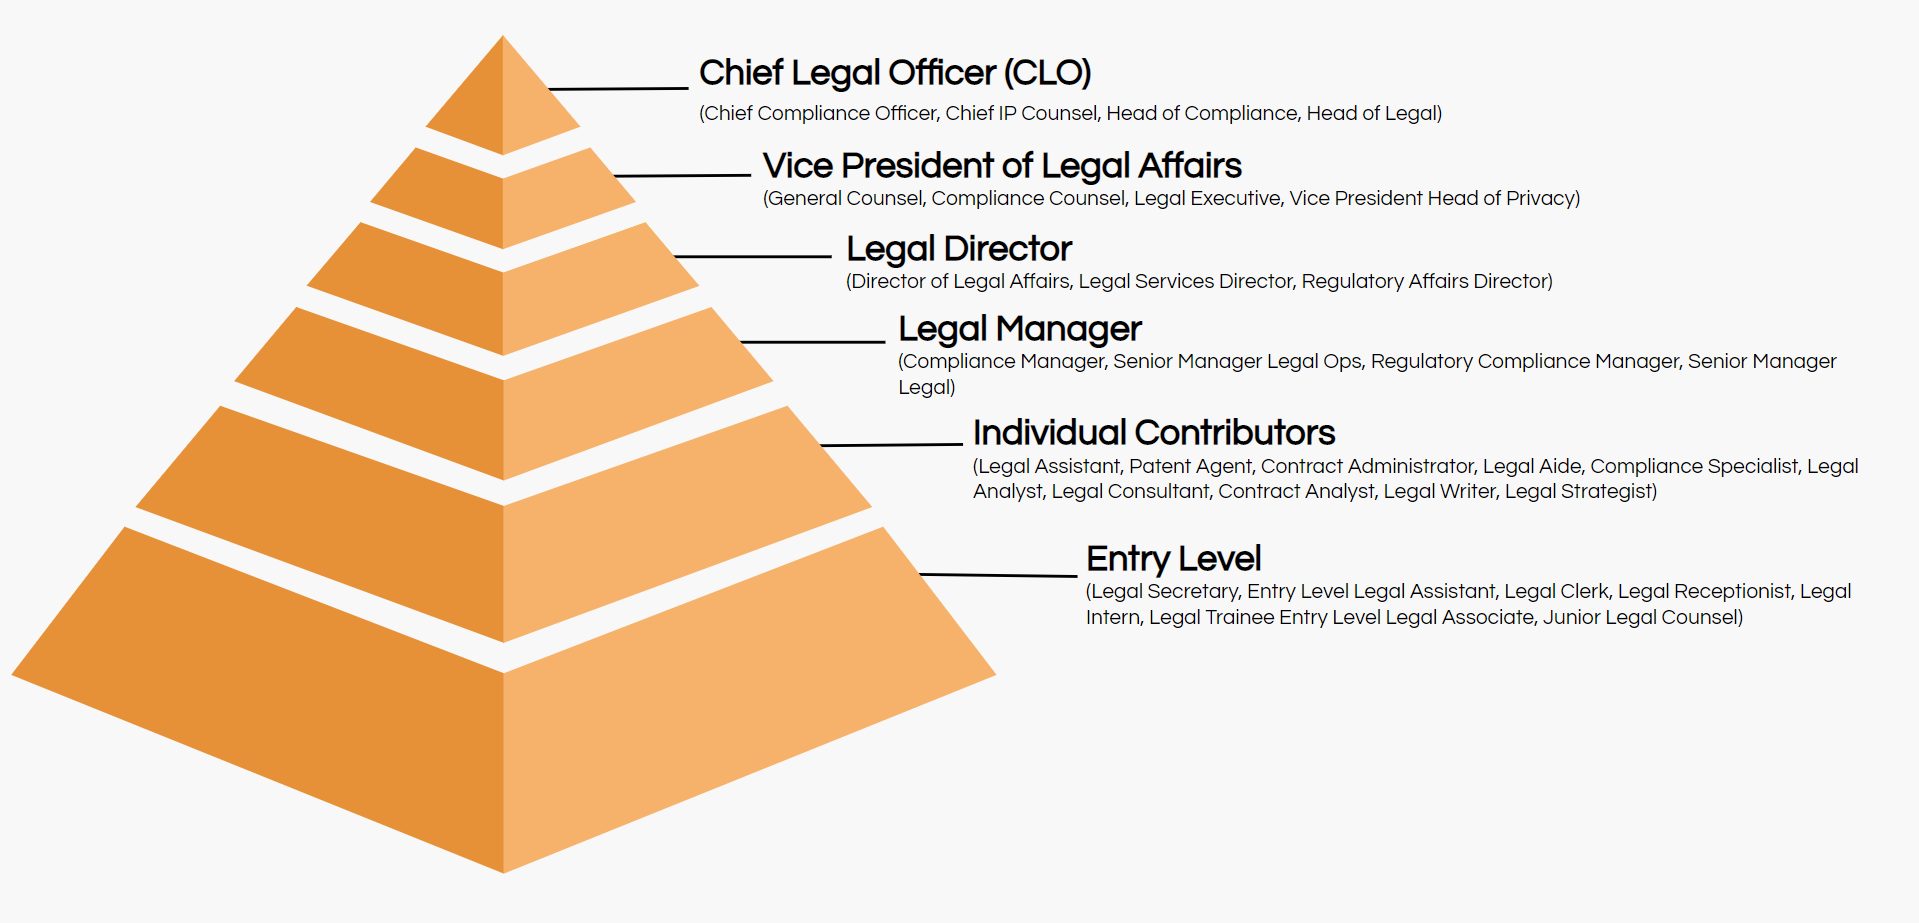 legal job titles hierarchy